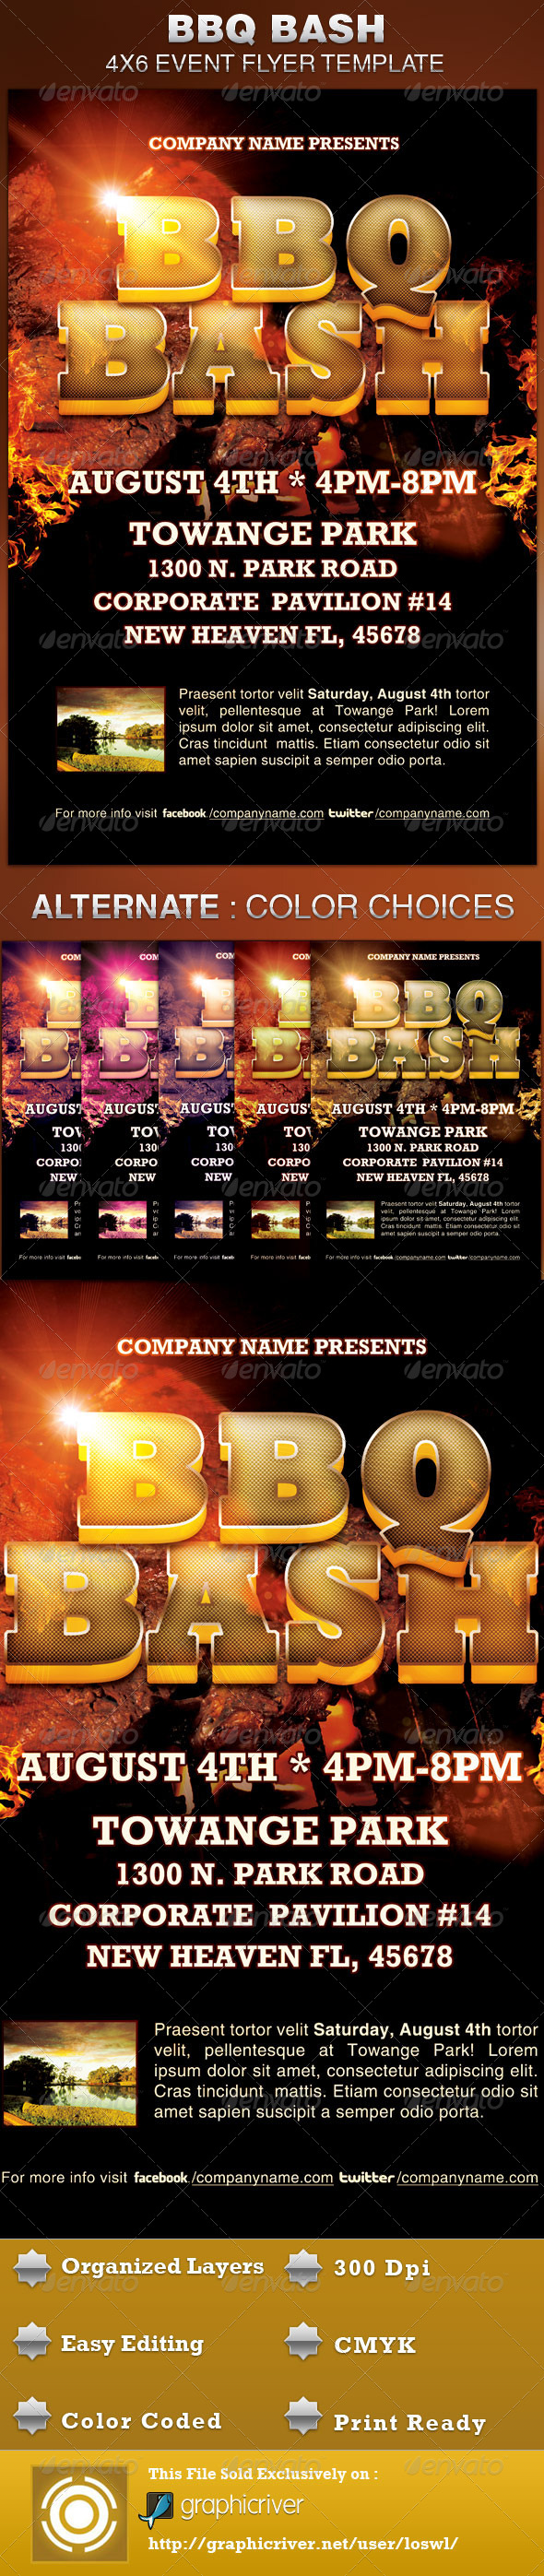 BBQ Bash Event Flyer Template - Events Flyers